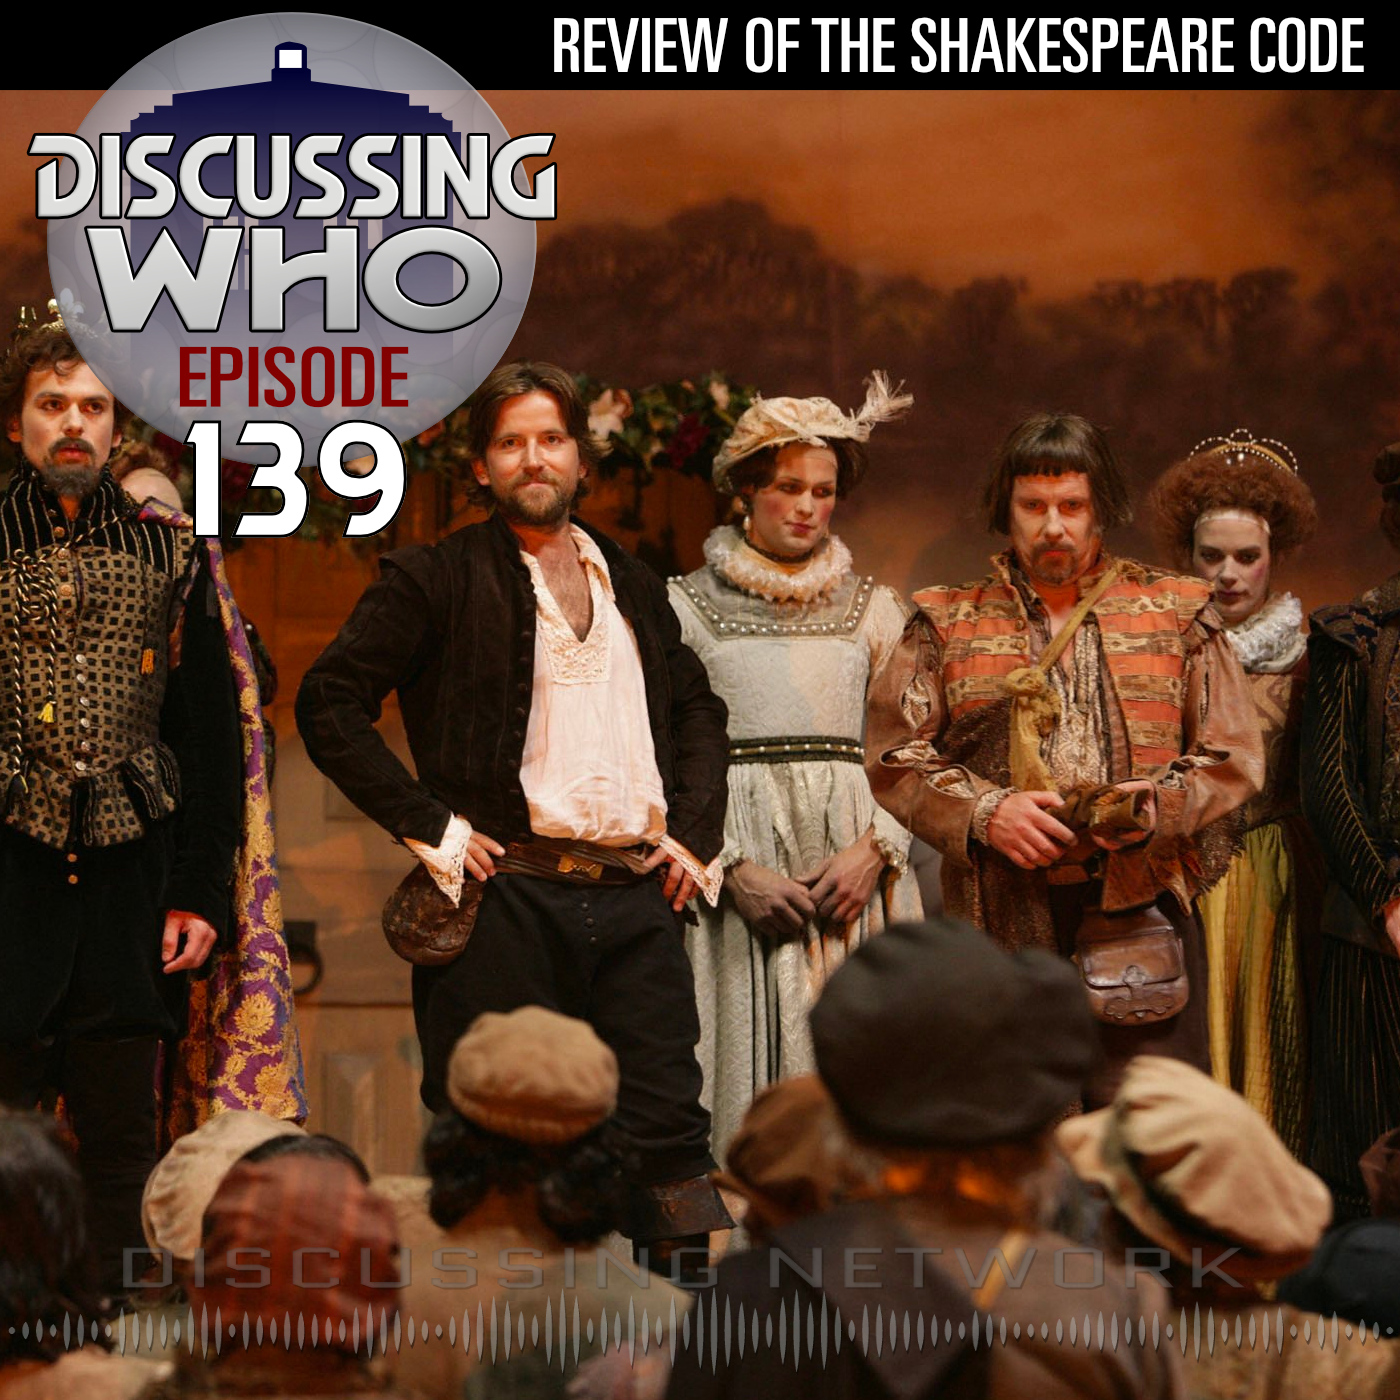 Review of the Shakespeare Code